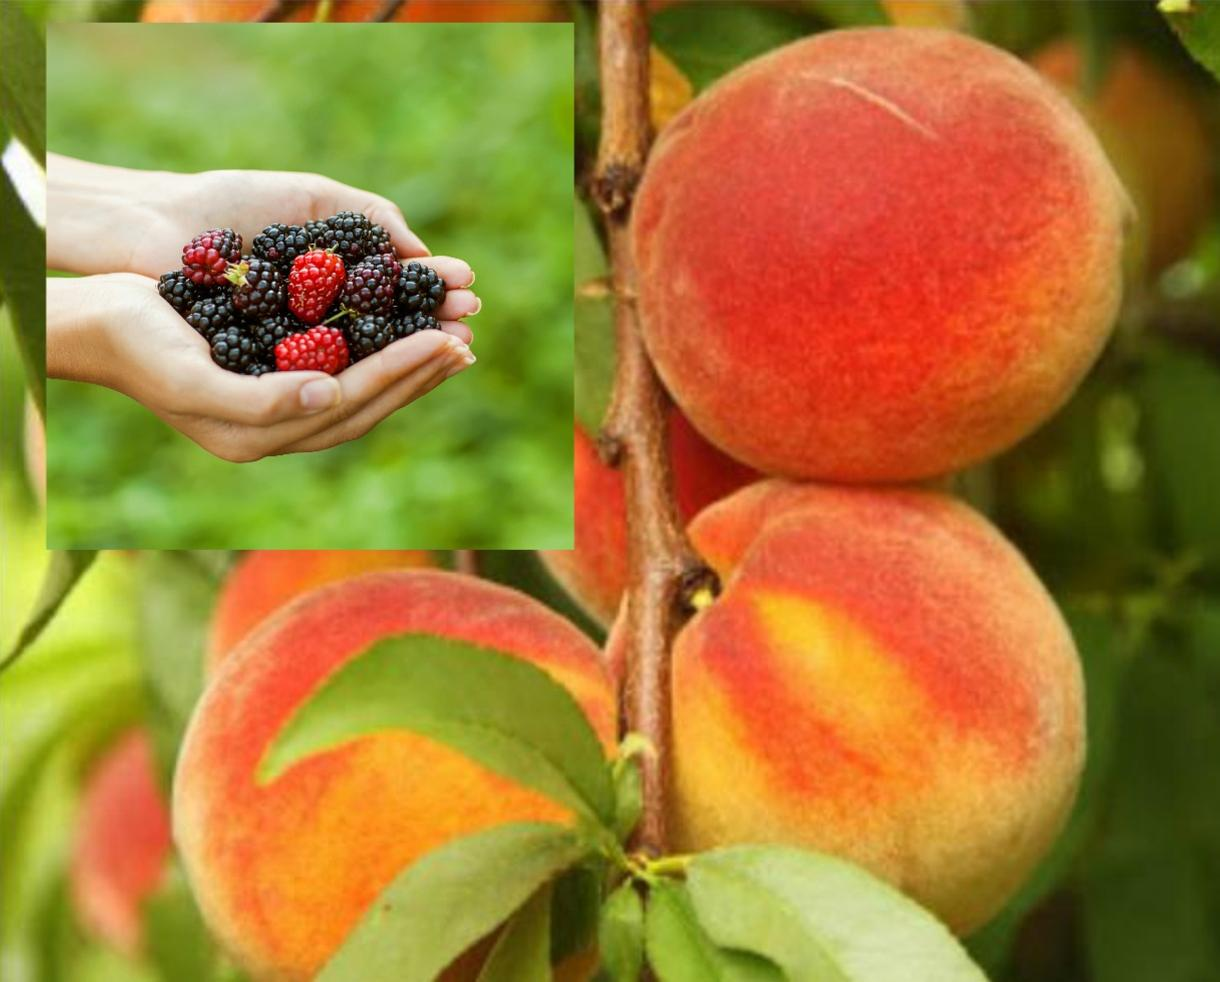 $6 for Great Country Farms Admission - BLACKBERRY & PEACH PICKING !!